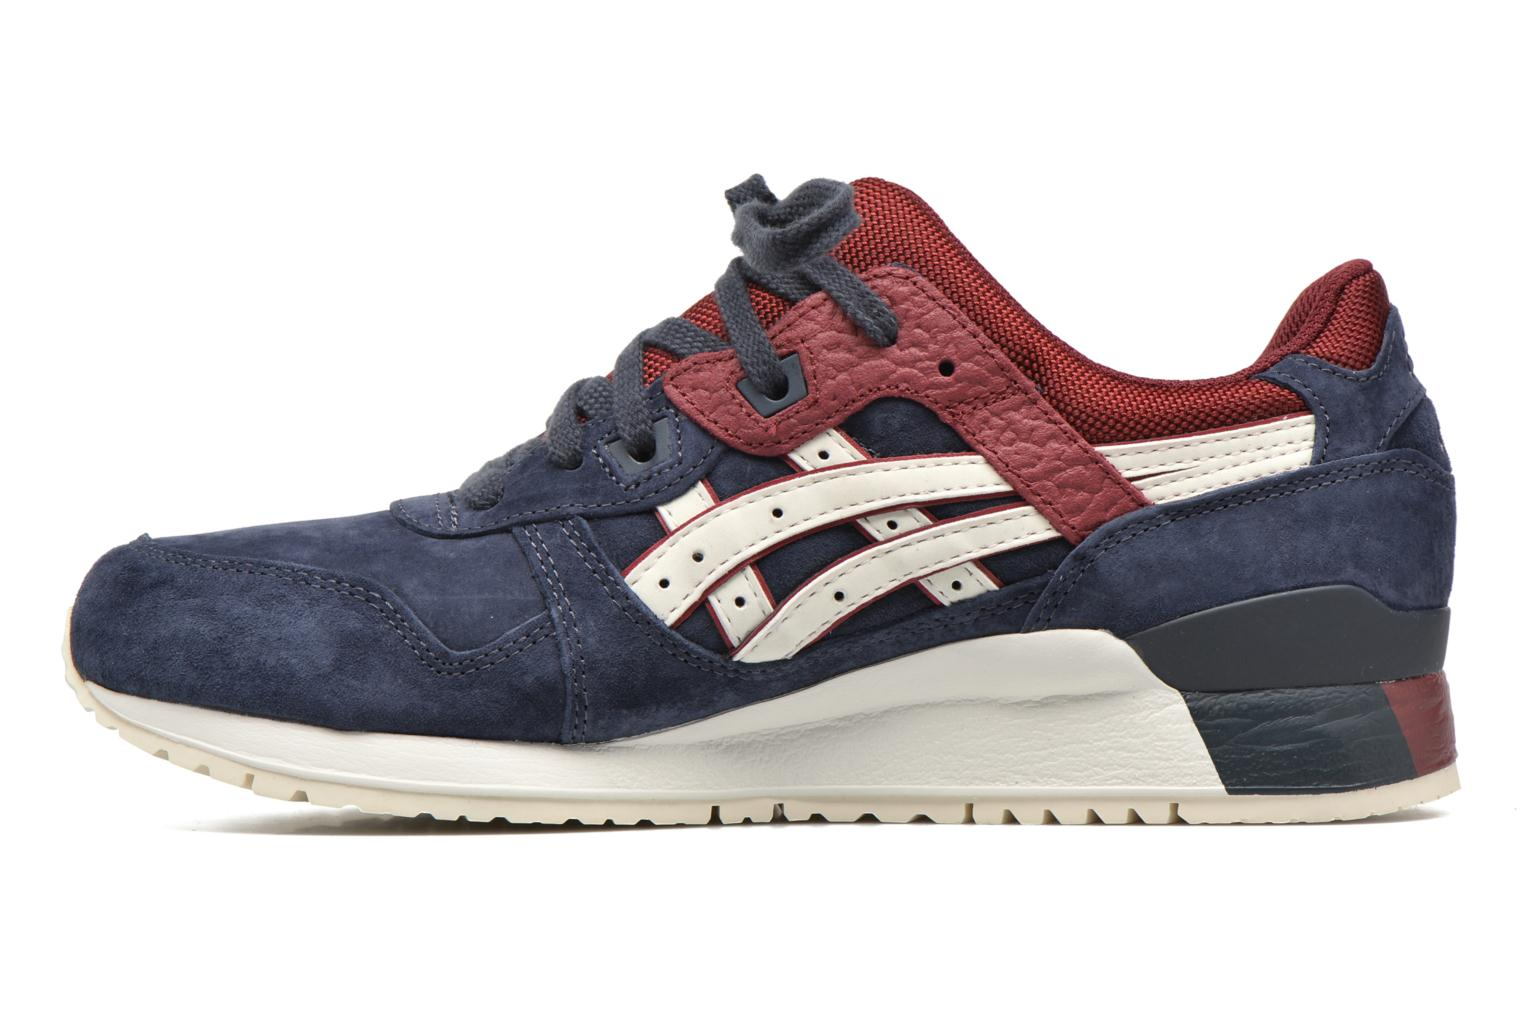 Gel-lyte III India Ink/Slight White